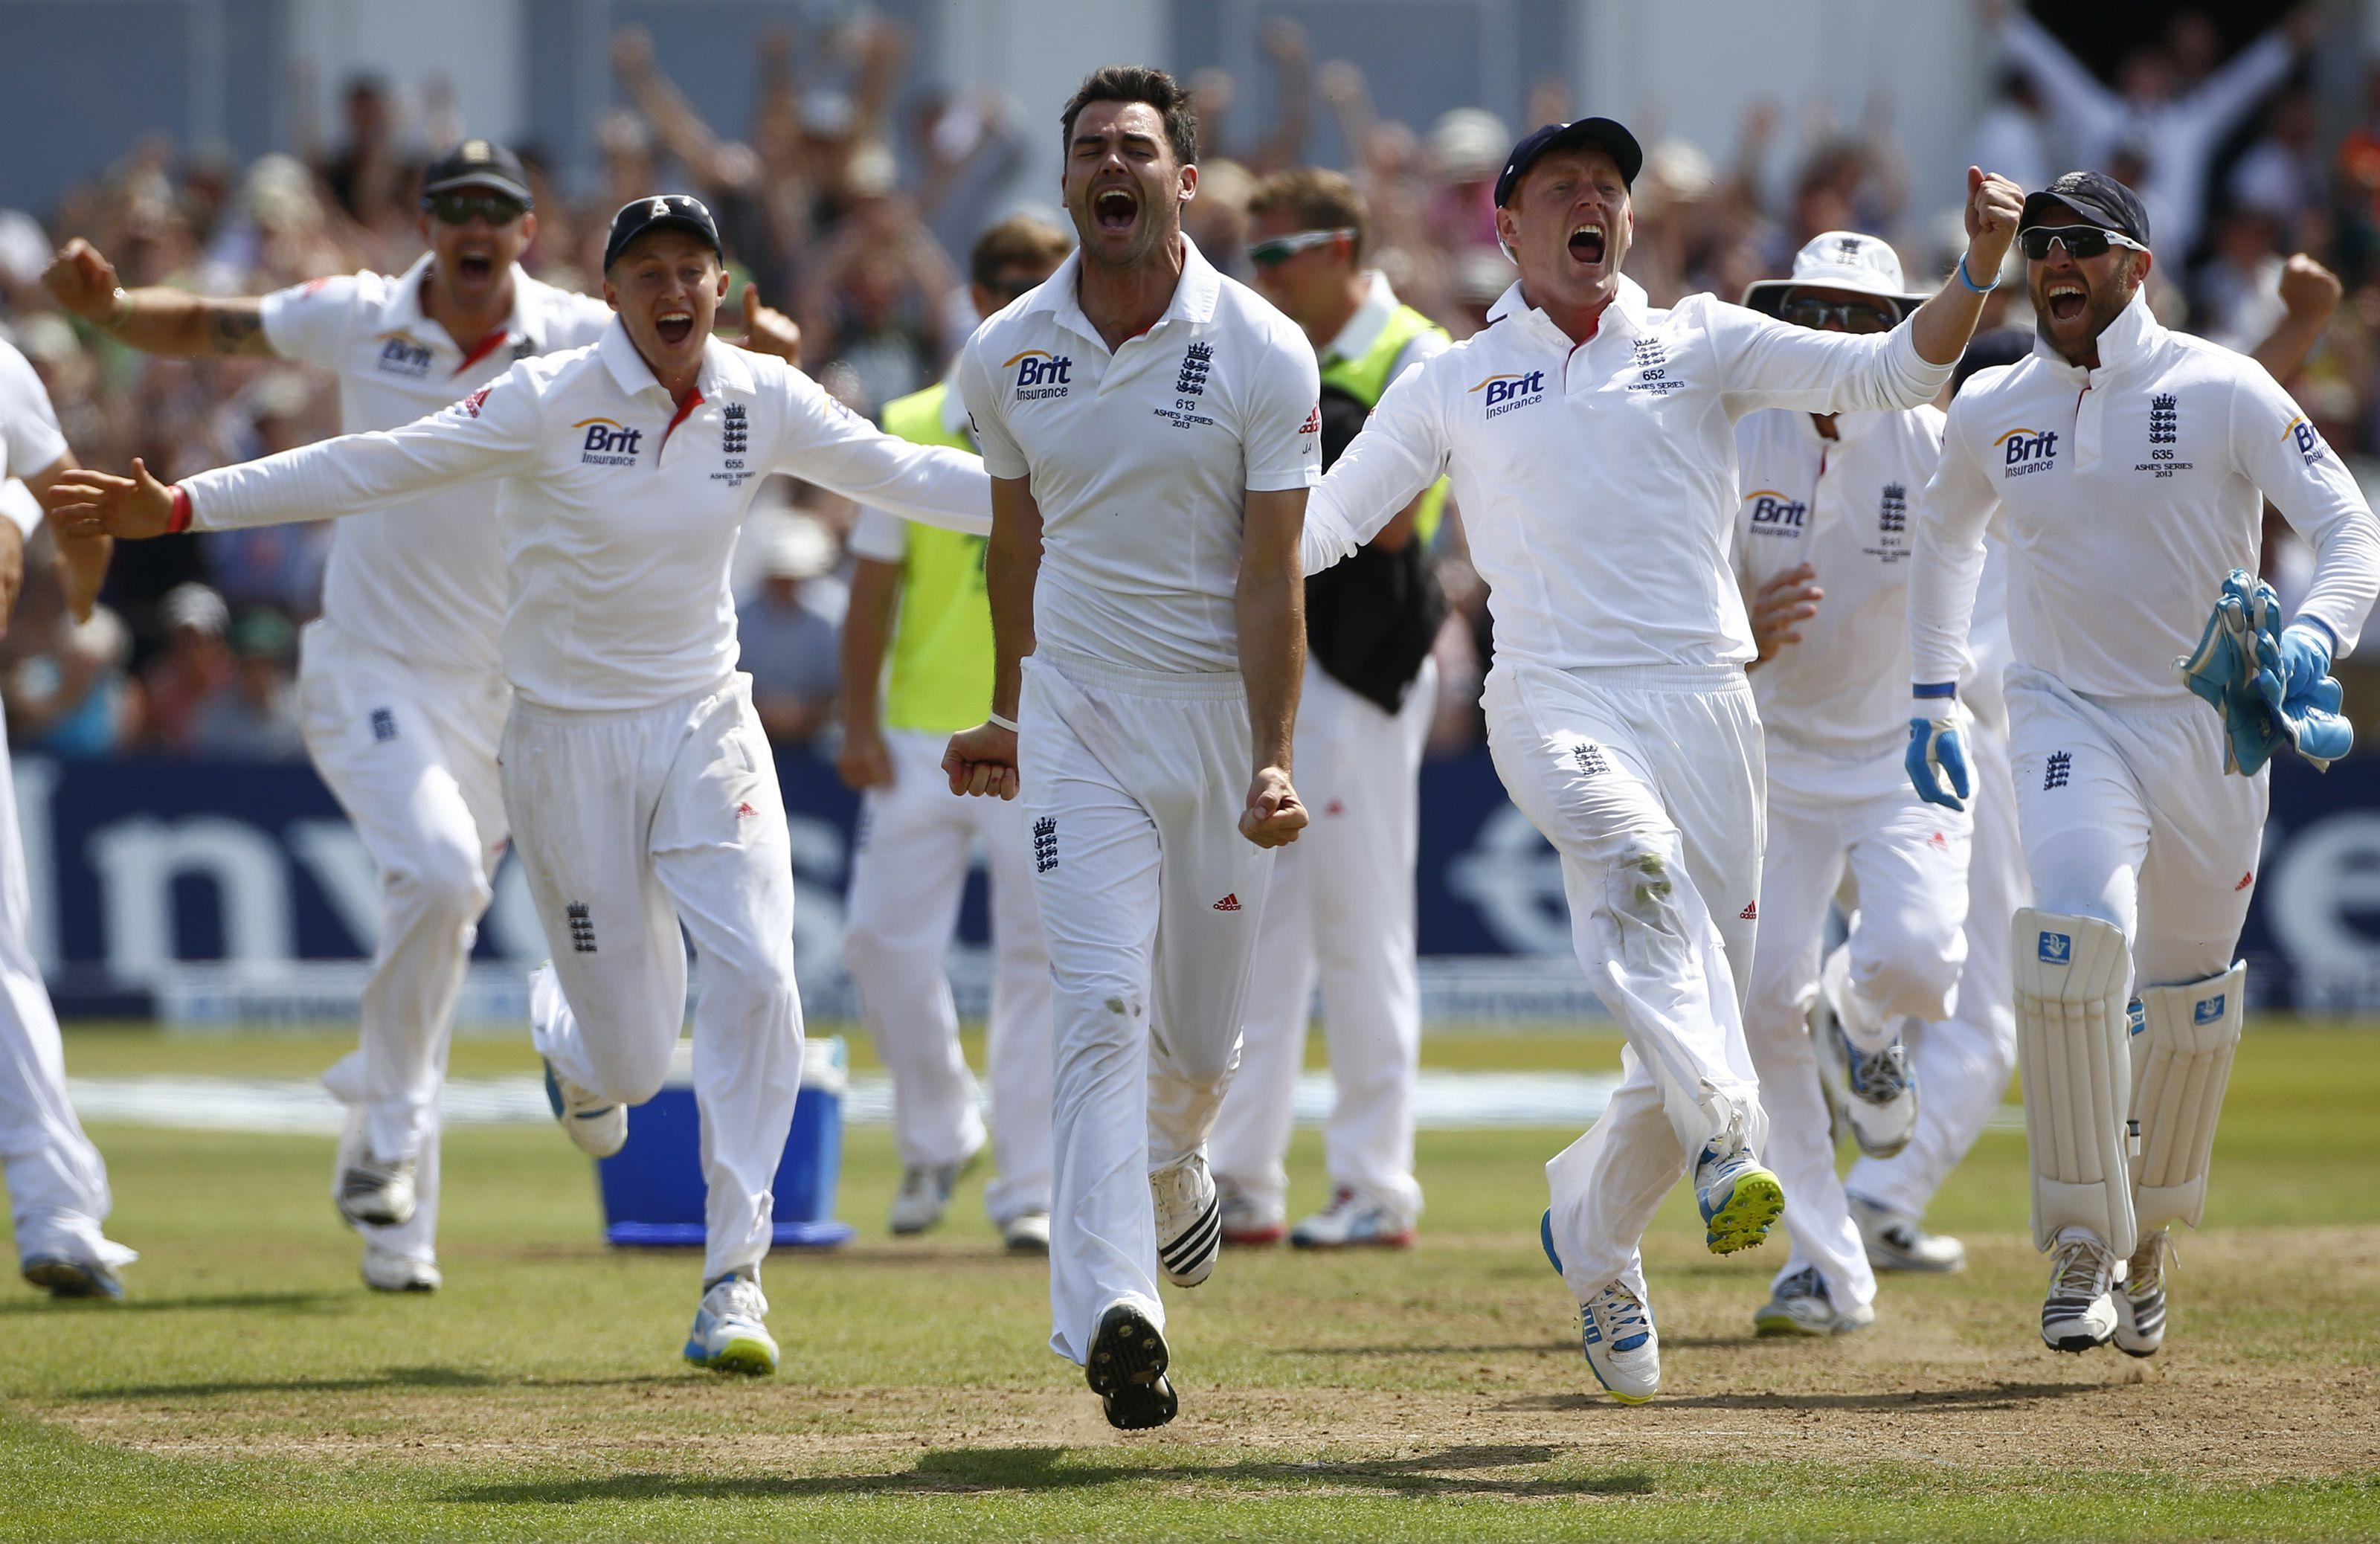 James Anderson took 10 wickets as England beat Australia at Trent Bridge in 2013